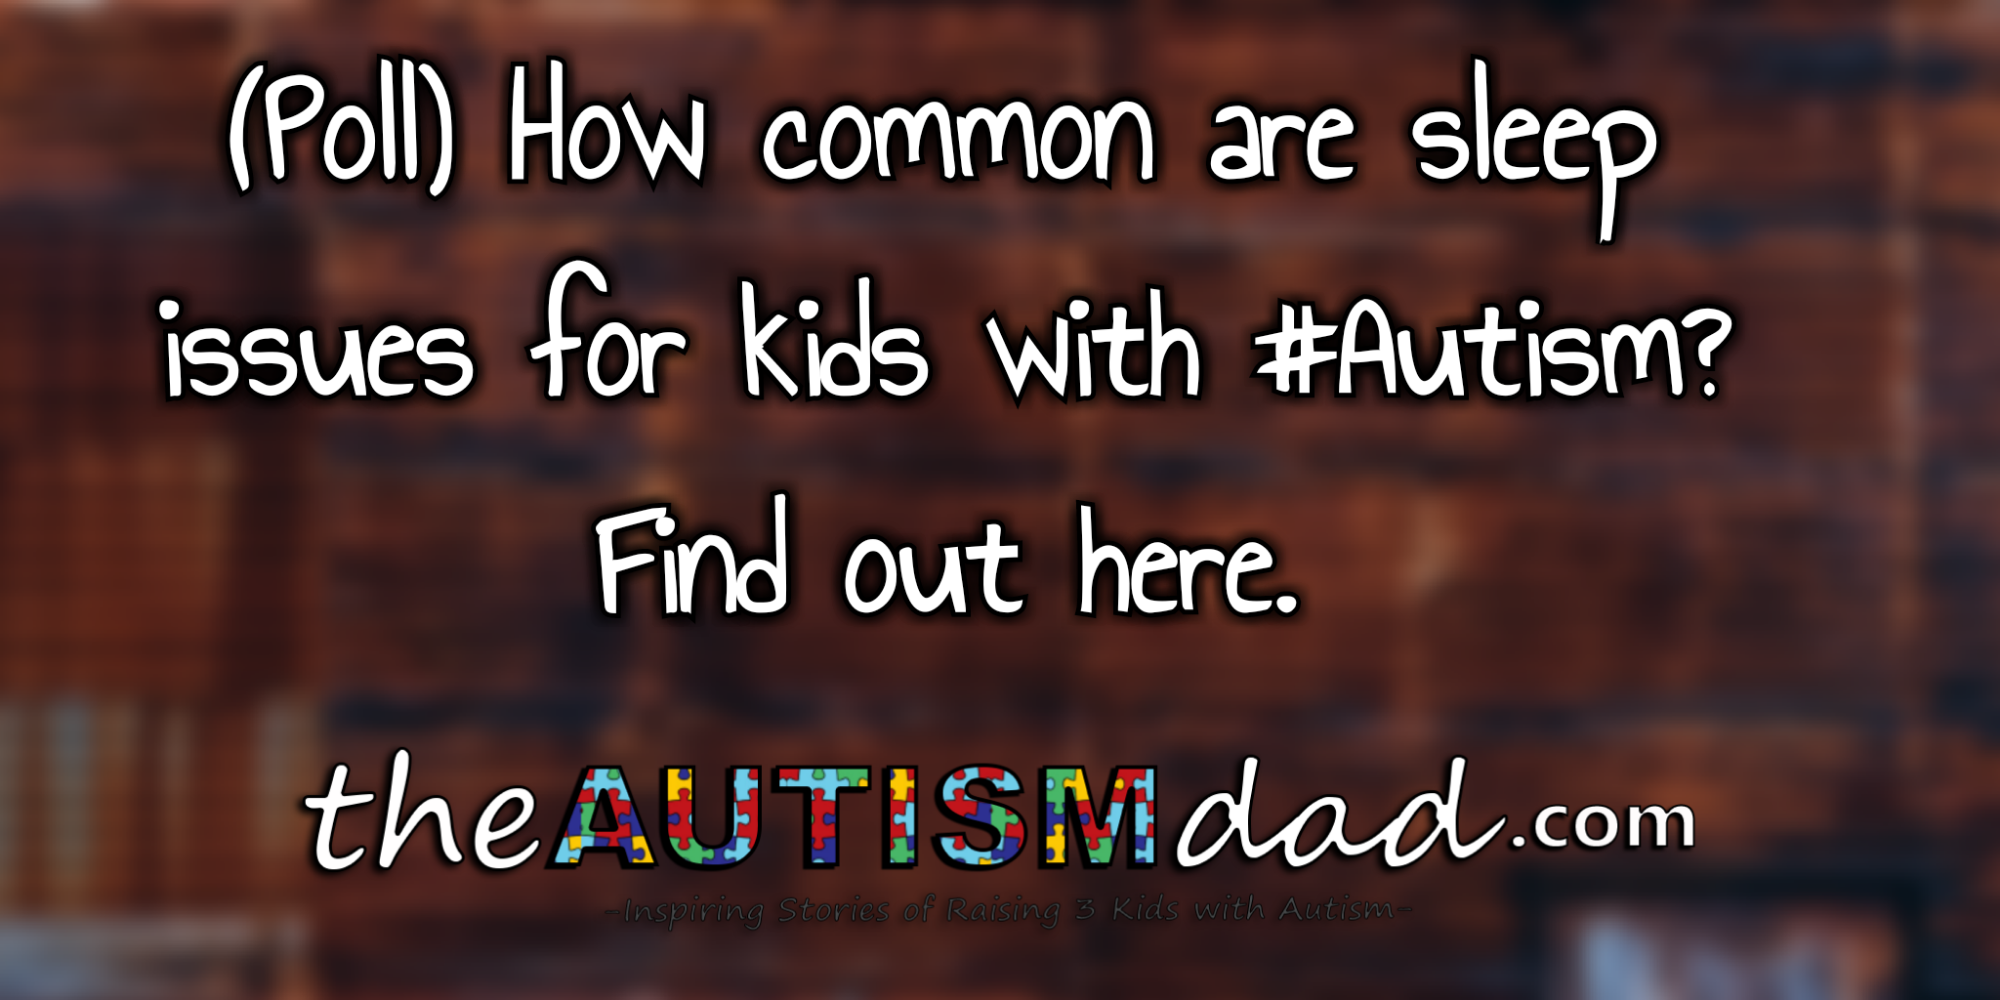 (Poll) How common are sleep issues for kids with #Autism? Find out here.